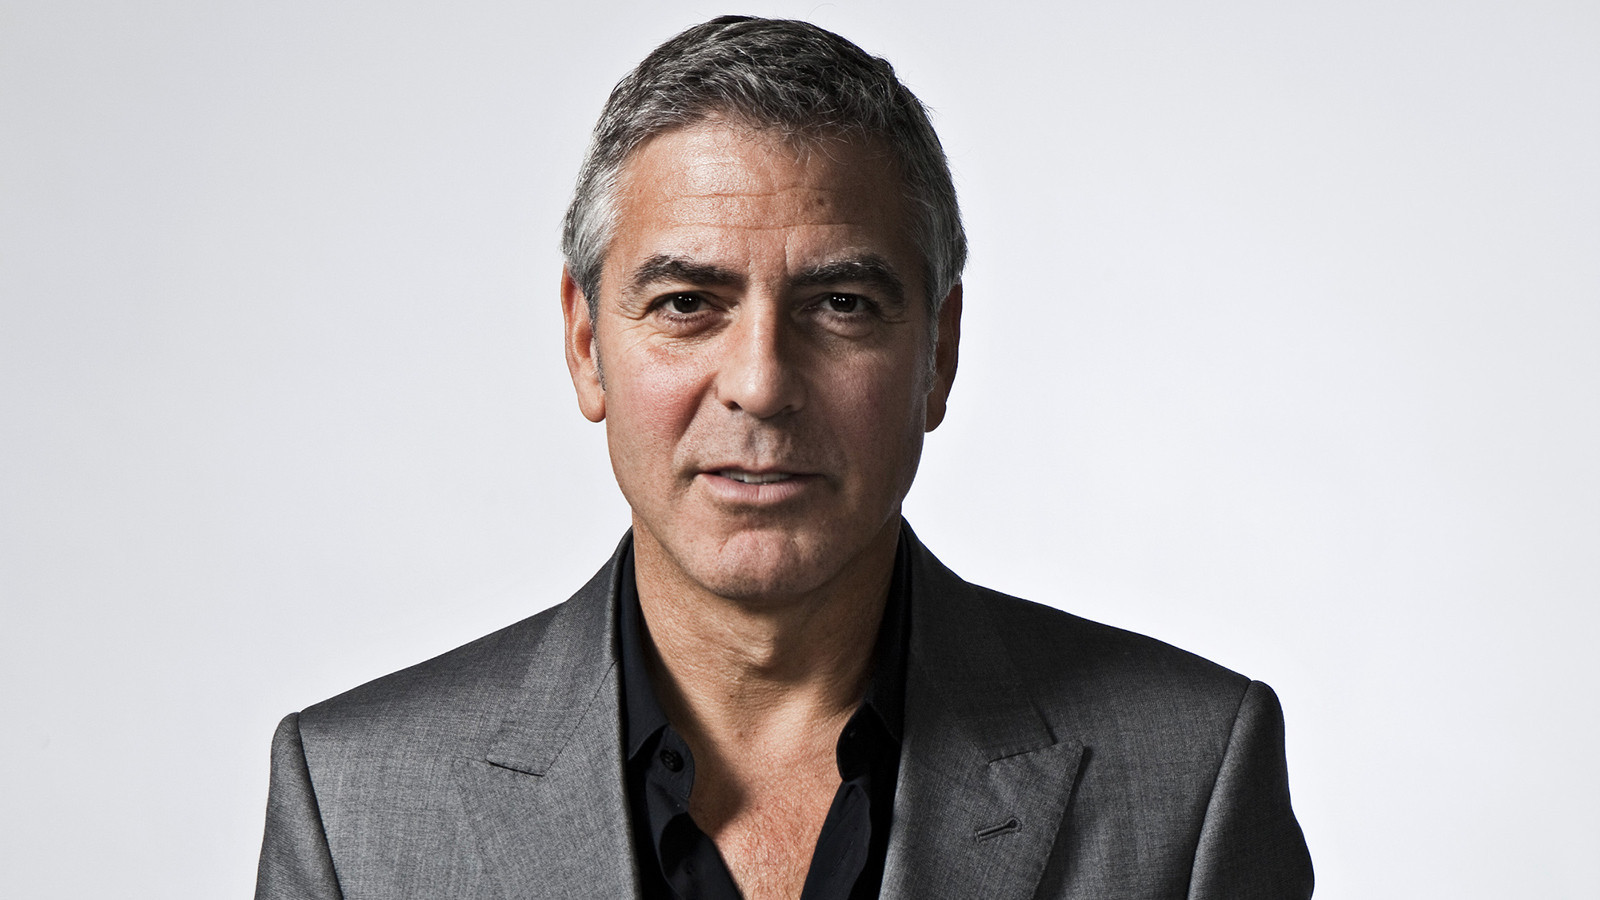 Golden Globes 2015: George Clooney, man in love, accepts DeMille award ...